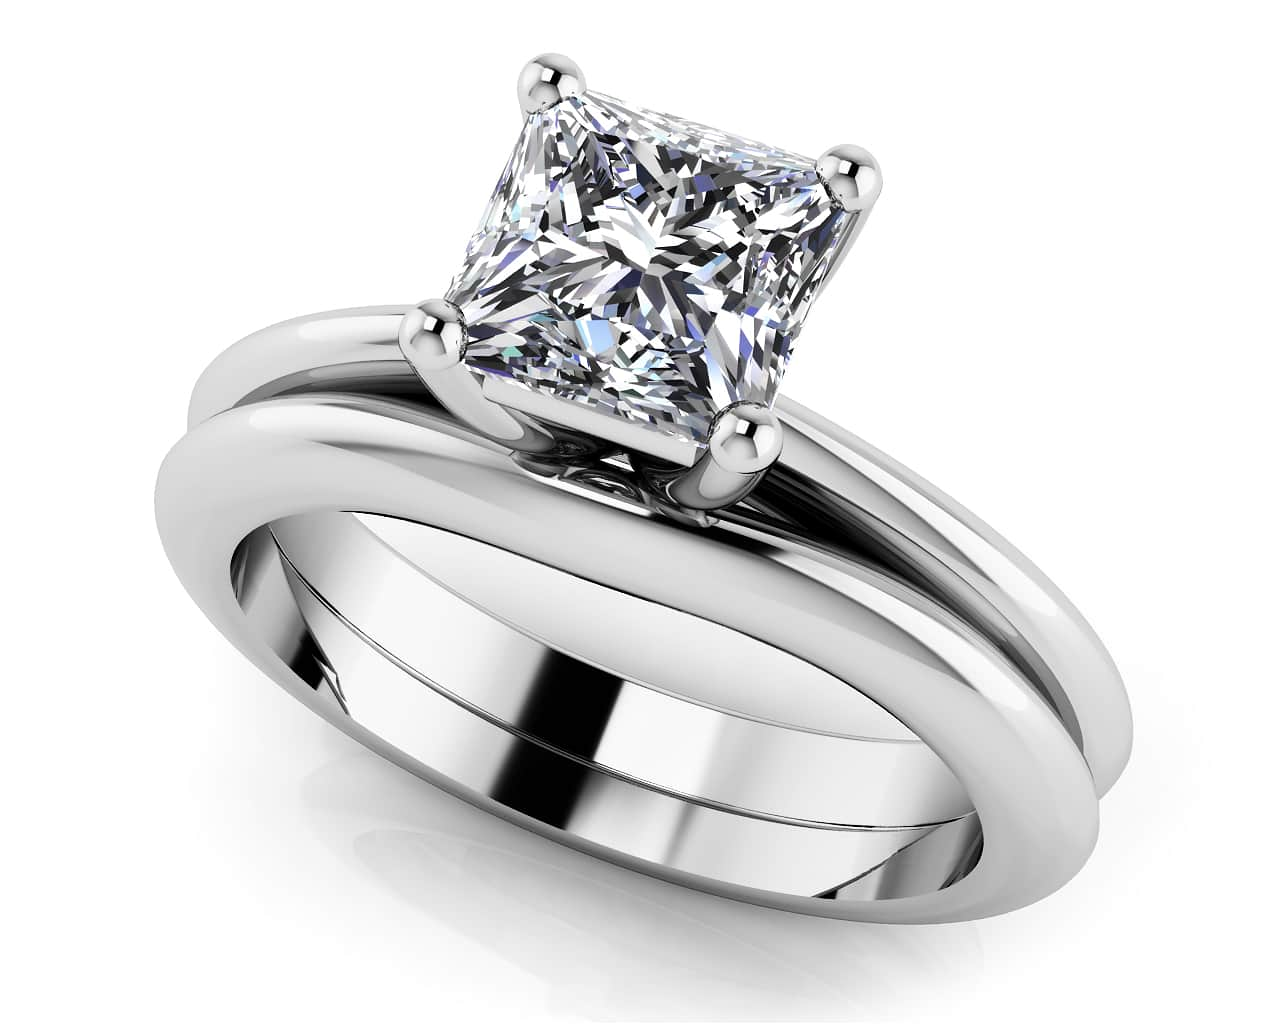 ritani halo engagement how with matching rings cushion your perfect band for blog wedding ring find to the